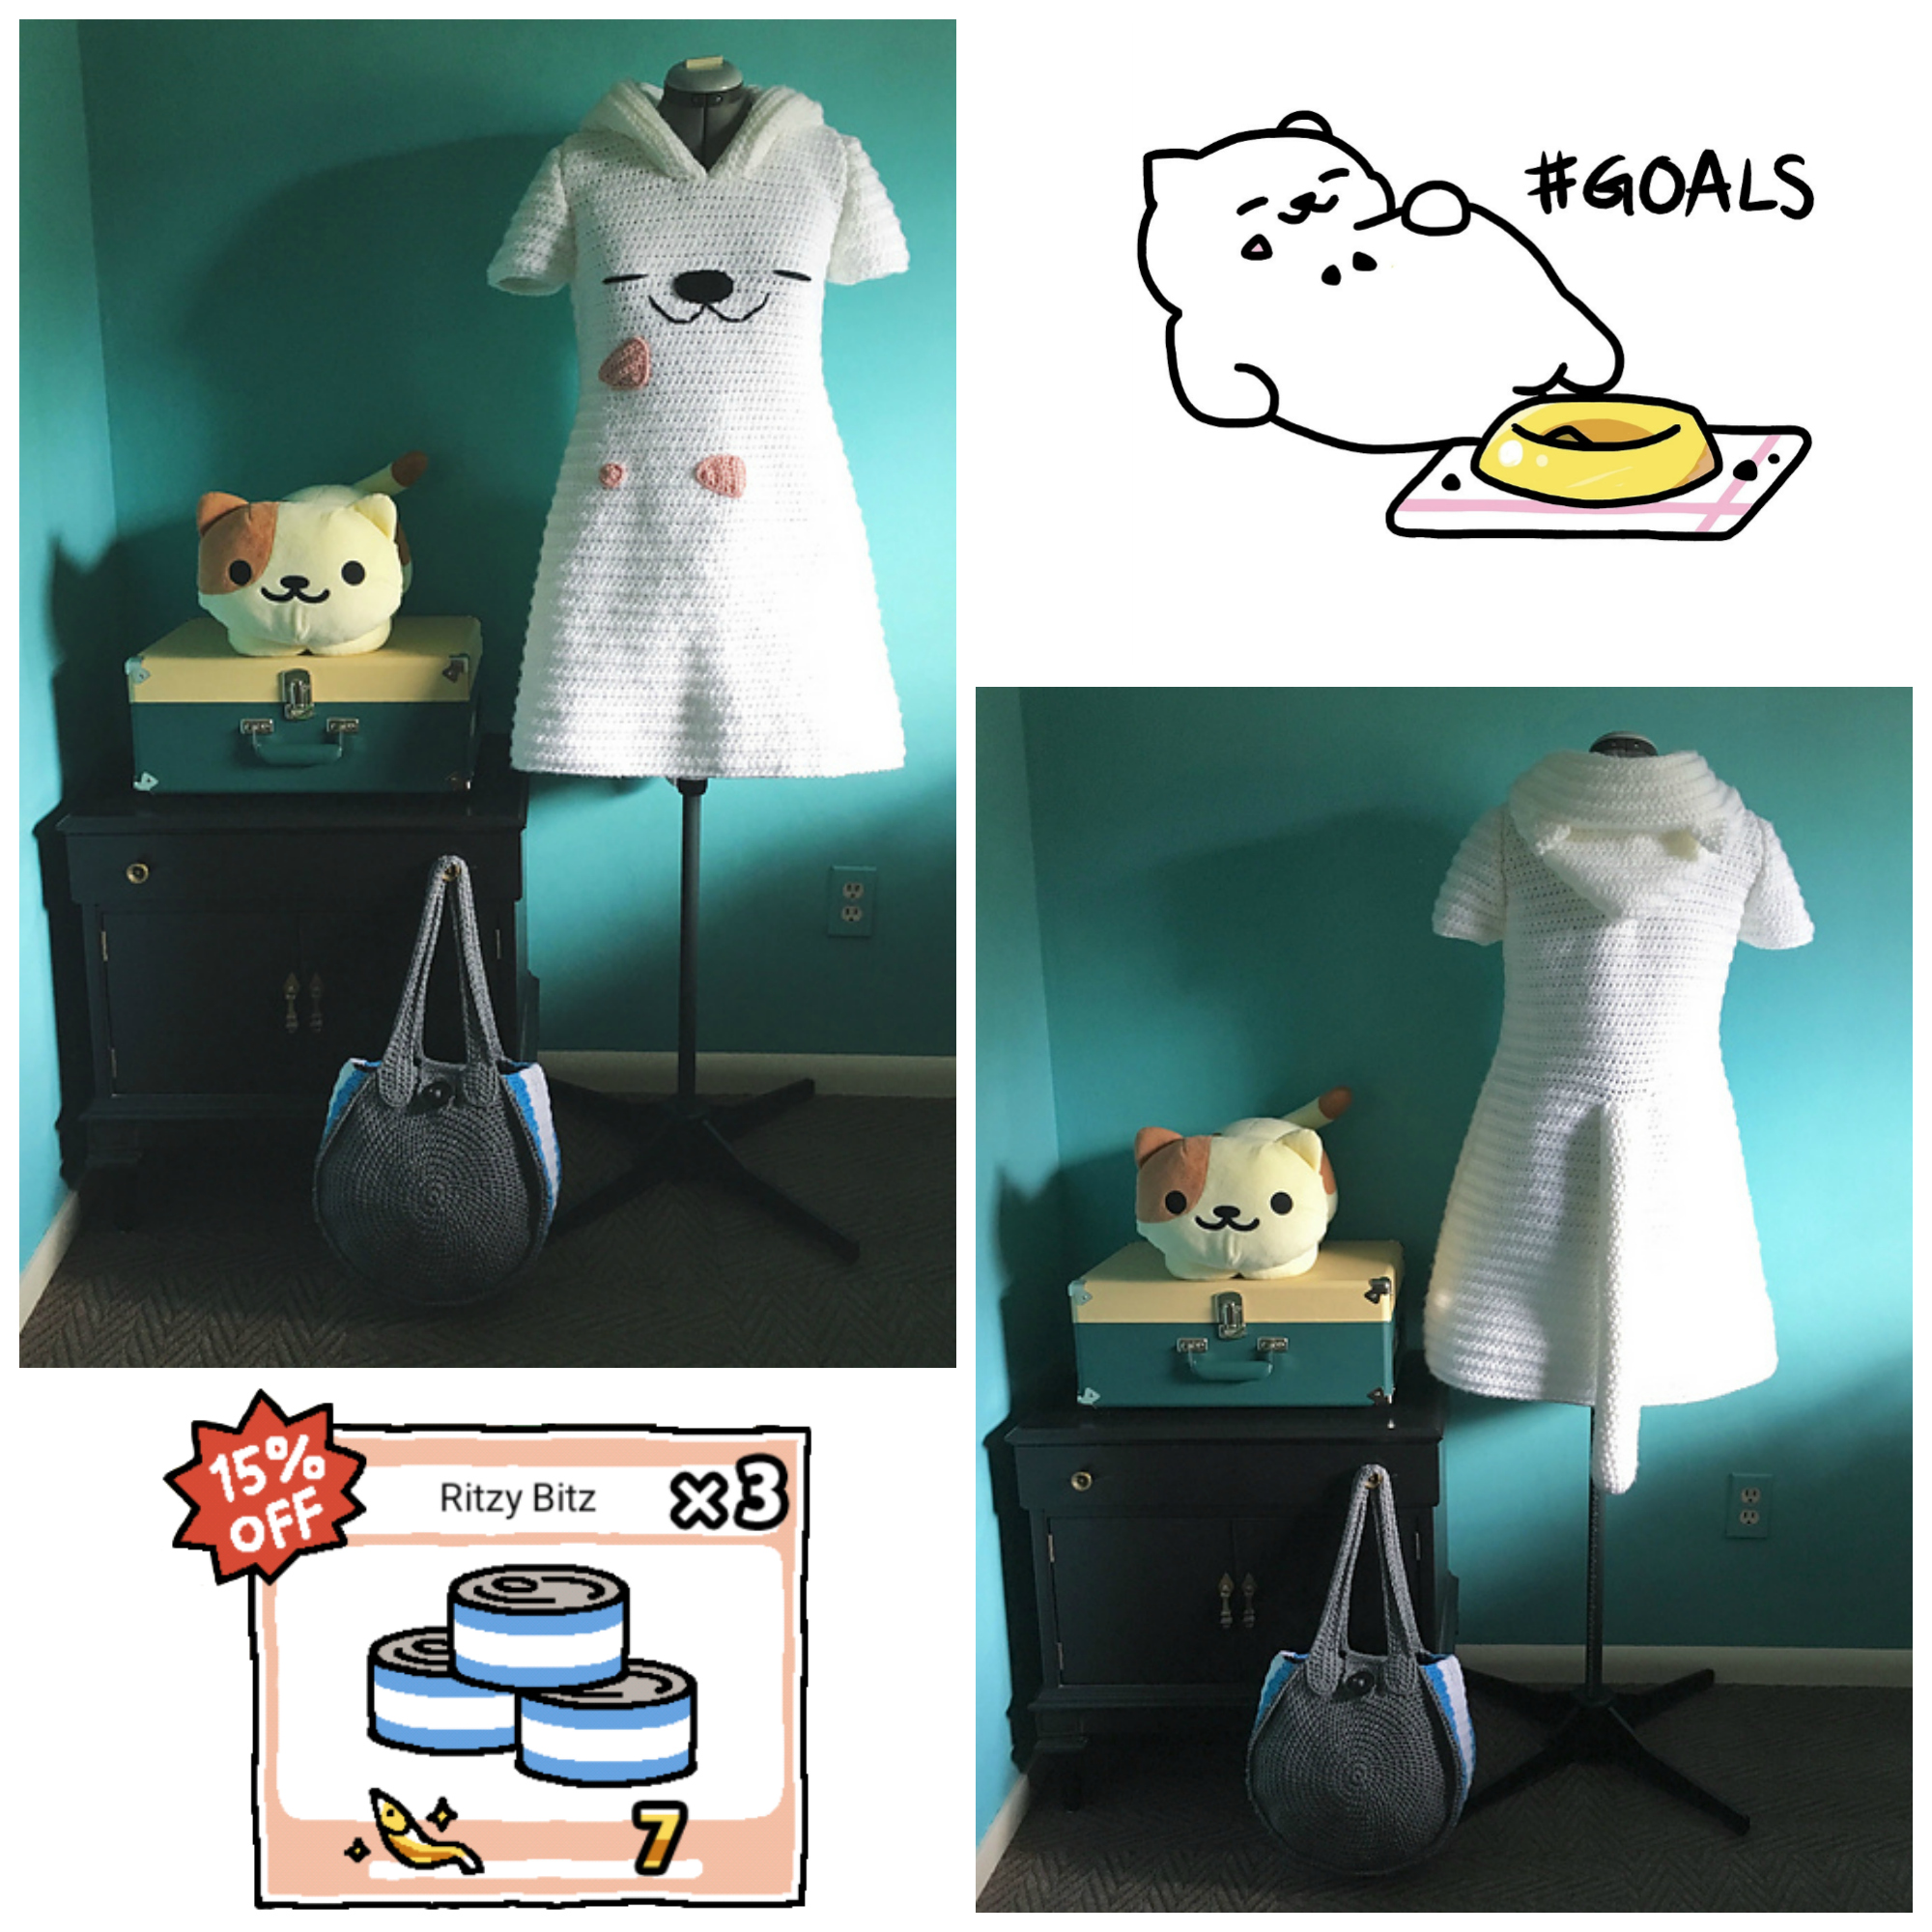 DianeQ's Neko Atsume Crochet Cosplay Featuring Tubbs and a Ritzy Bitz Bag!